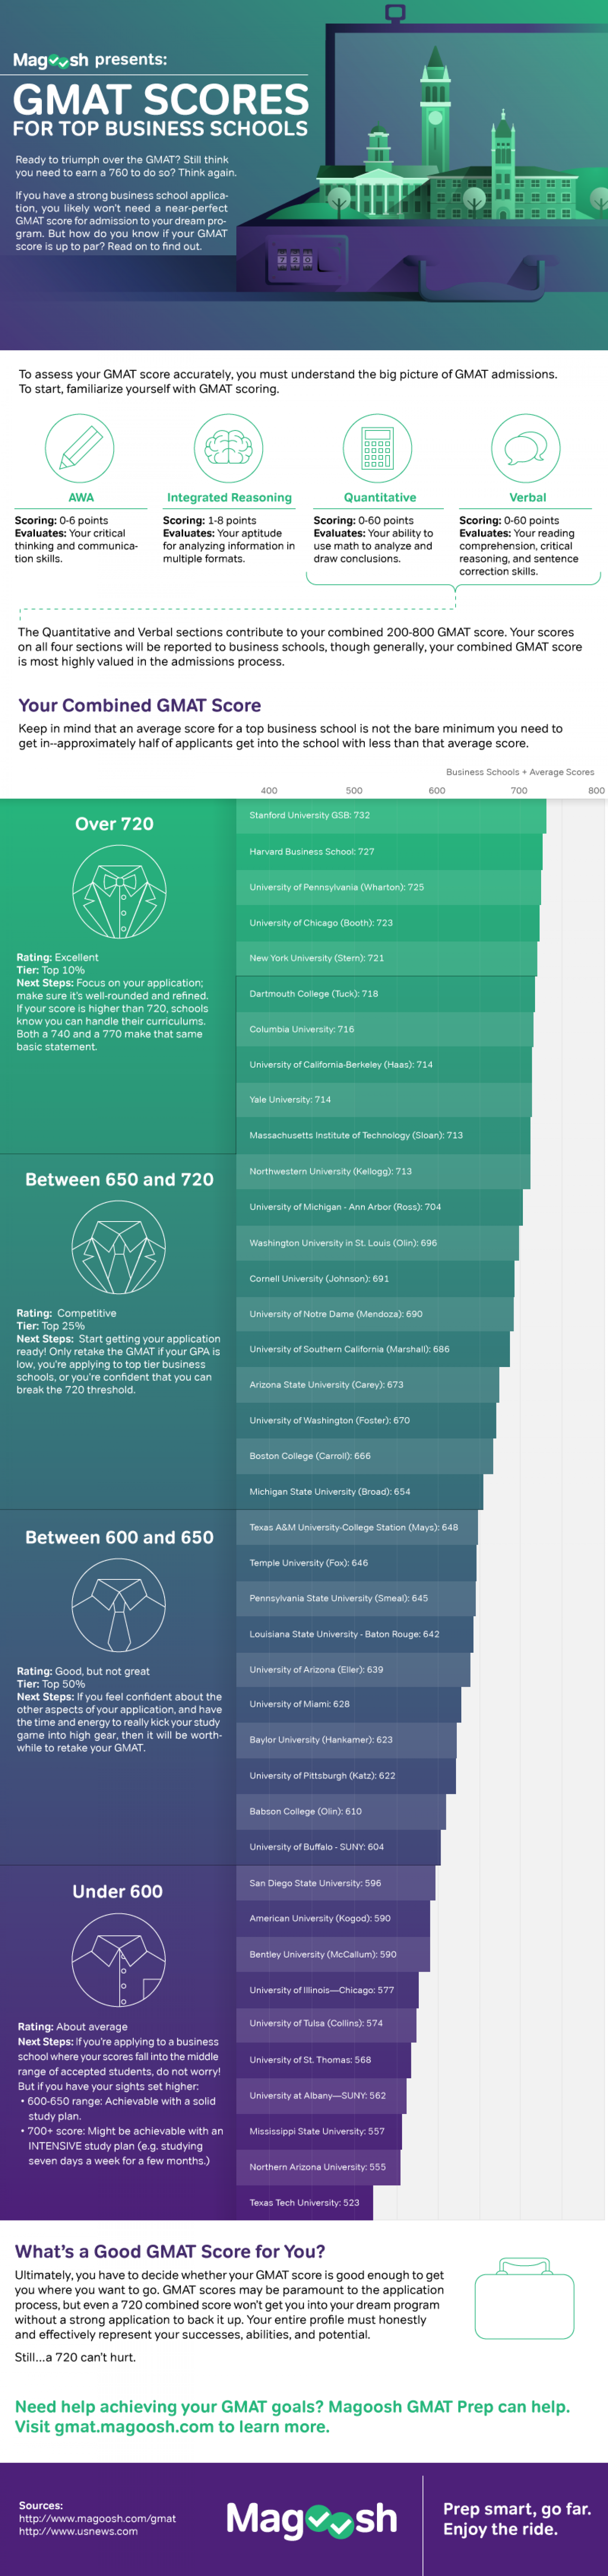 GMAT Scores For Top Business Schools Infographic